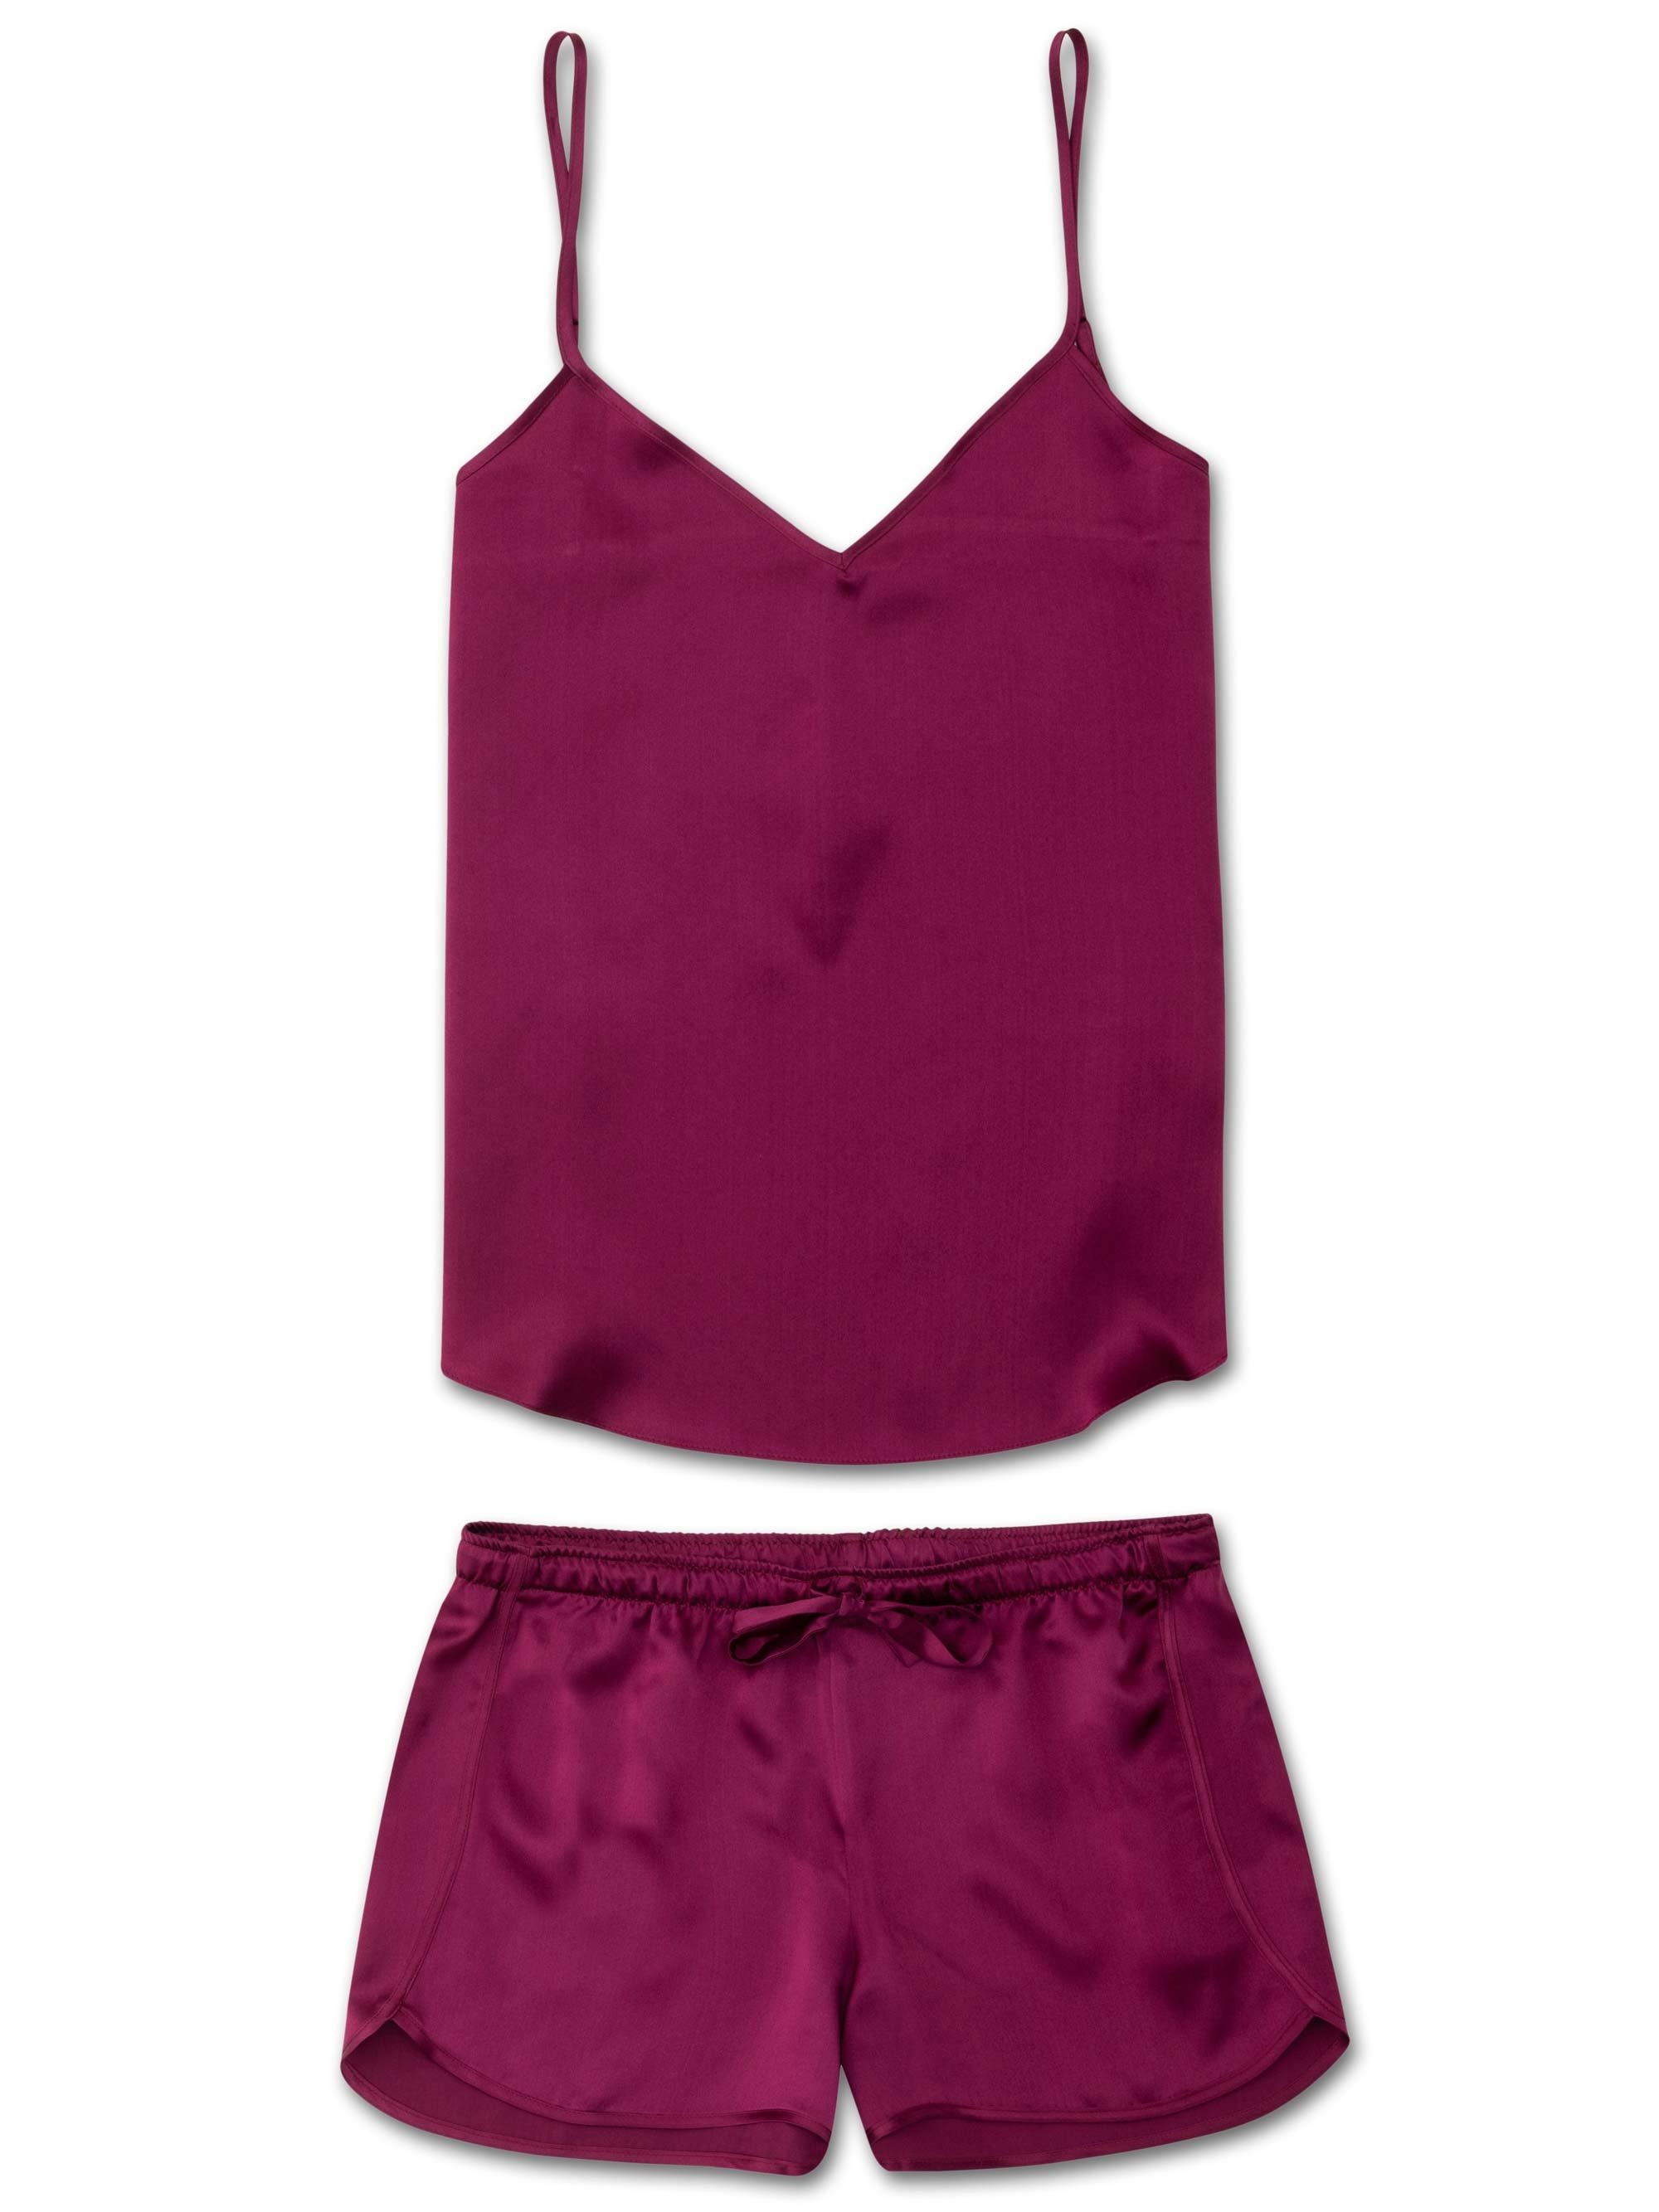 Women's Cami Short Pyjama Set Bailey Pure Silk Satin Berry